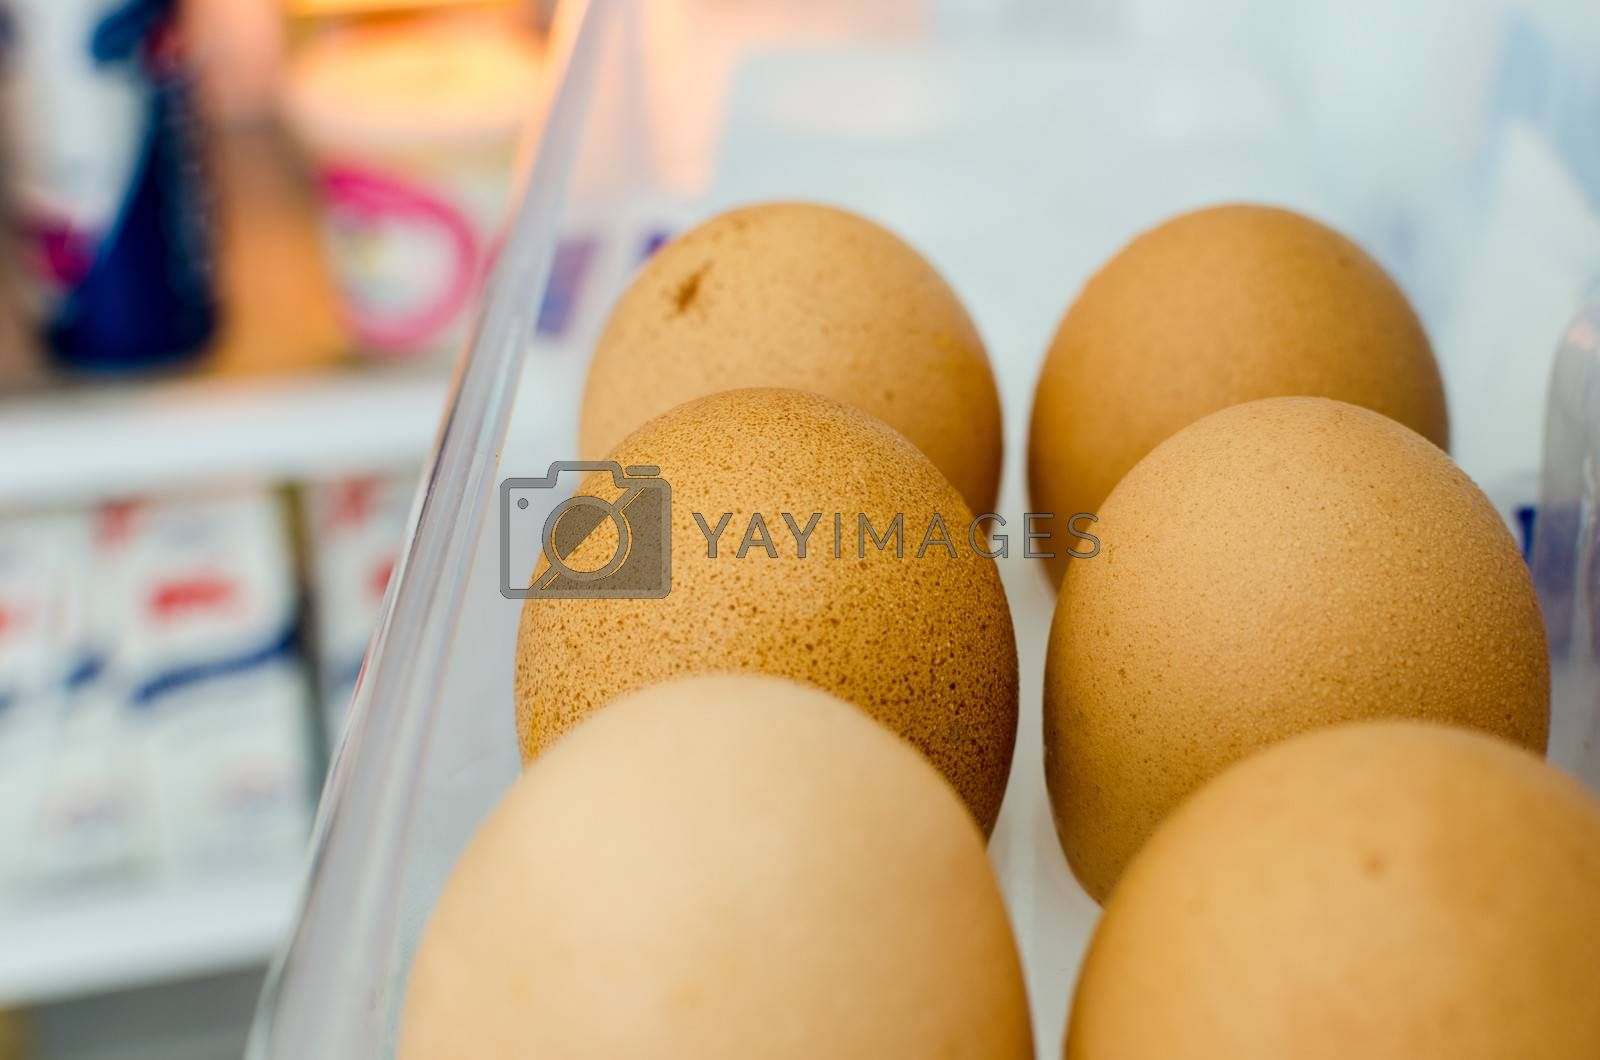 Royalty free image of Six eggs stored in the refrigerator door by finallast